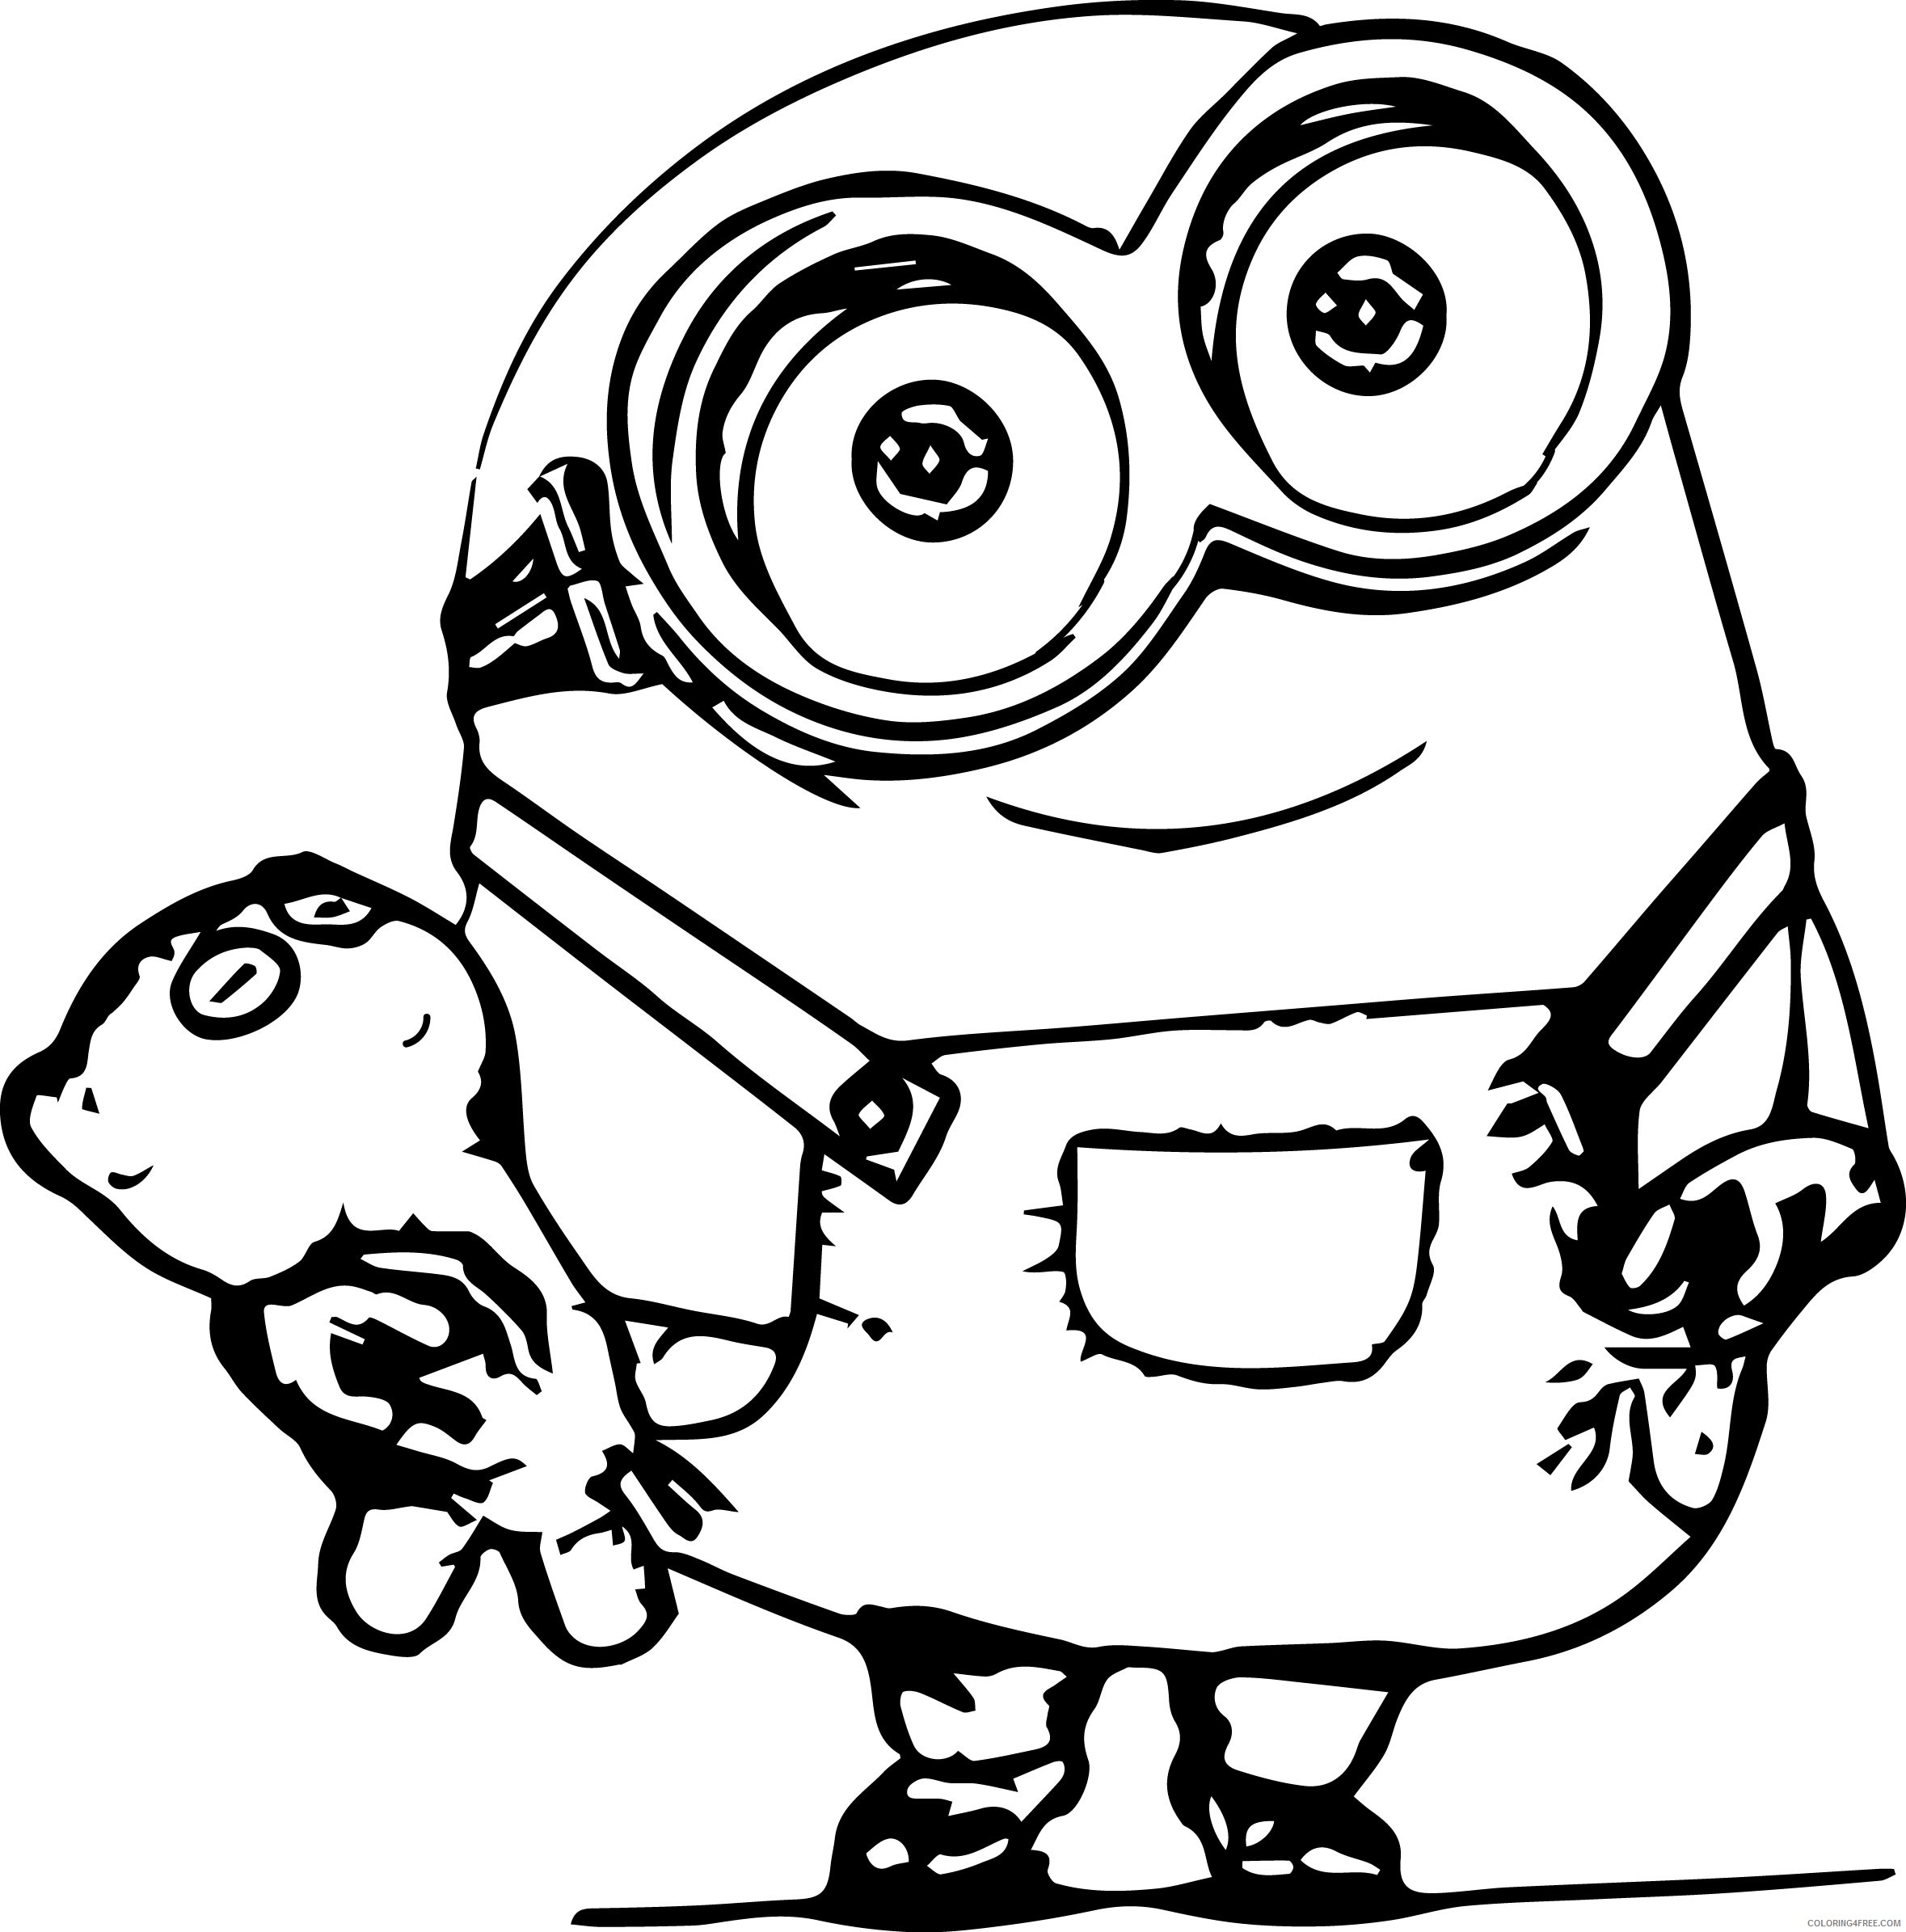 bob the minions coloring pages Coloring18free   Coloring18Free.com